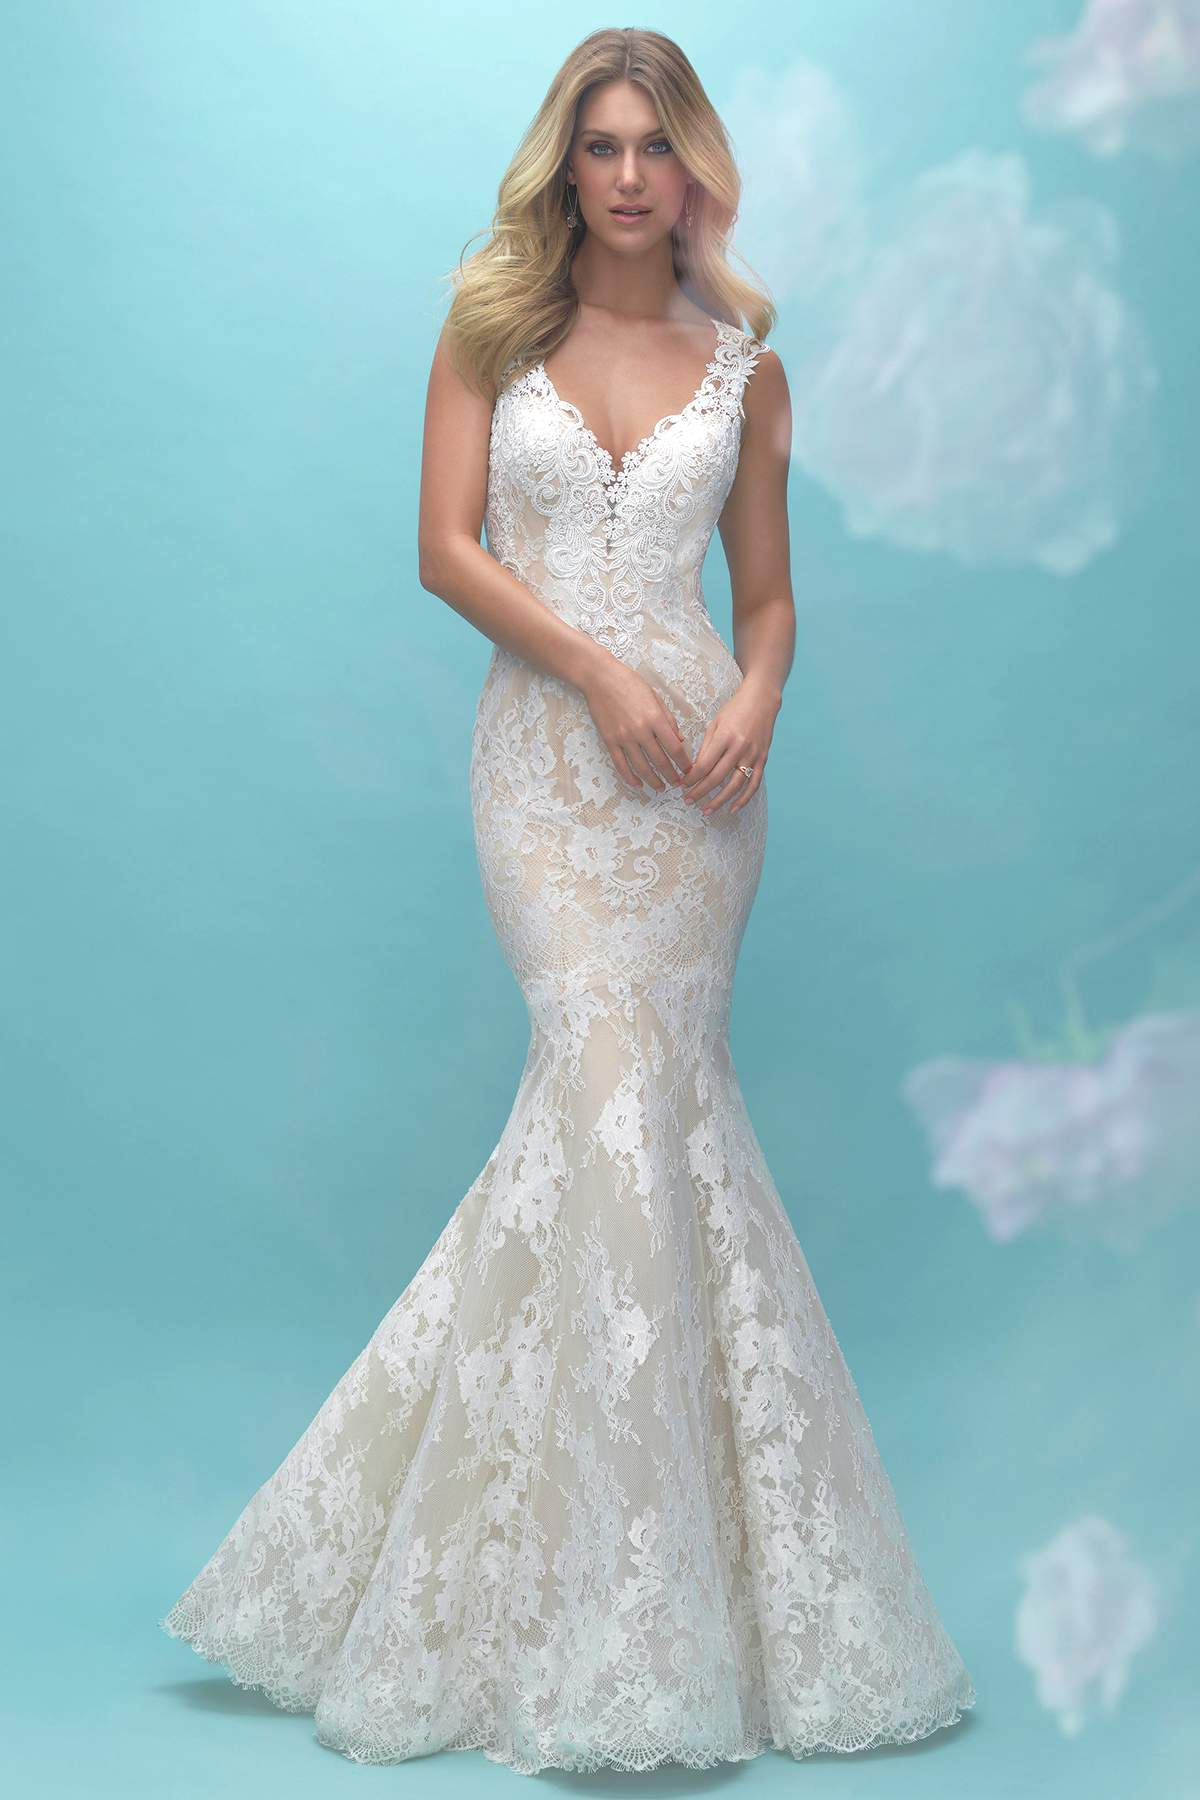 139b19a02b1ff Style 9464 by Allure Bridals - Find Your Dream Dress